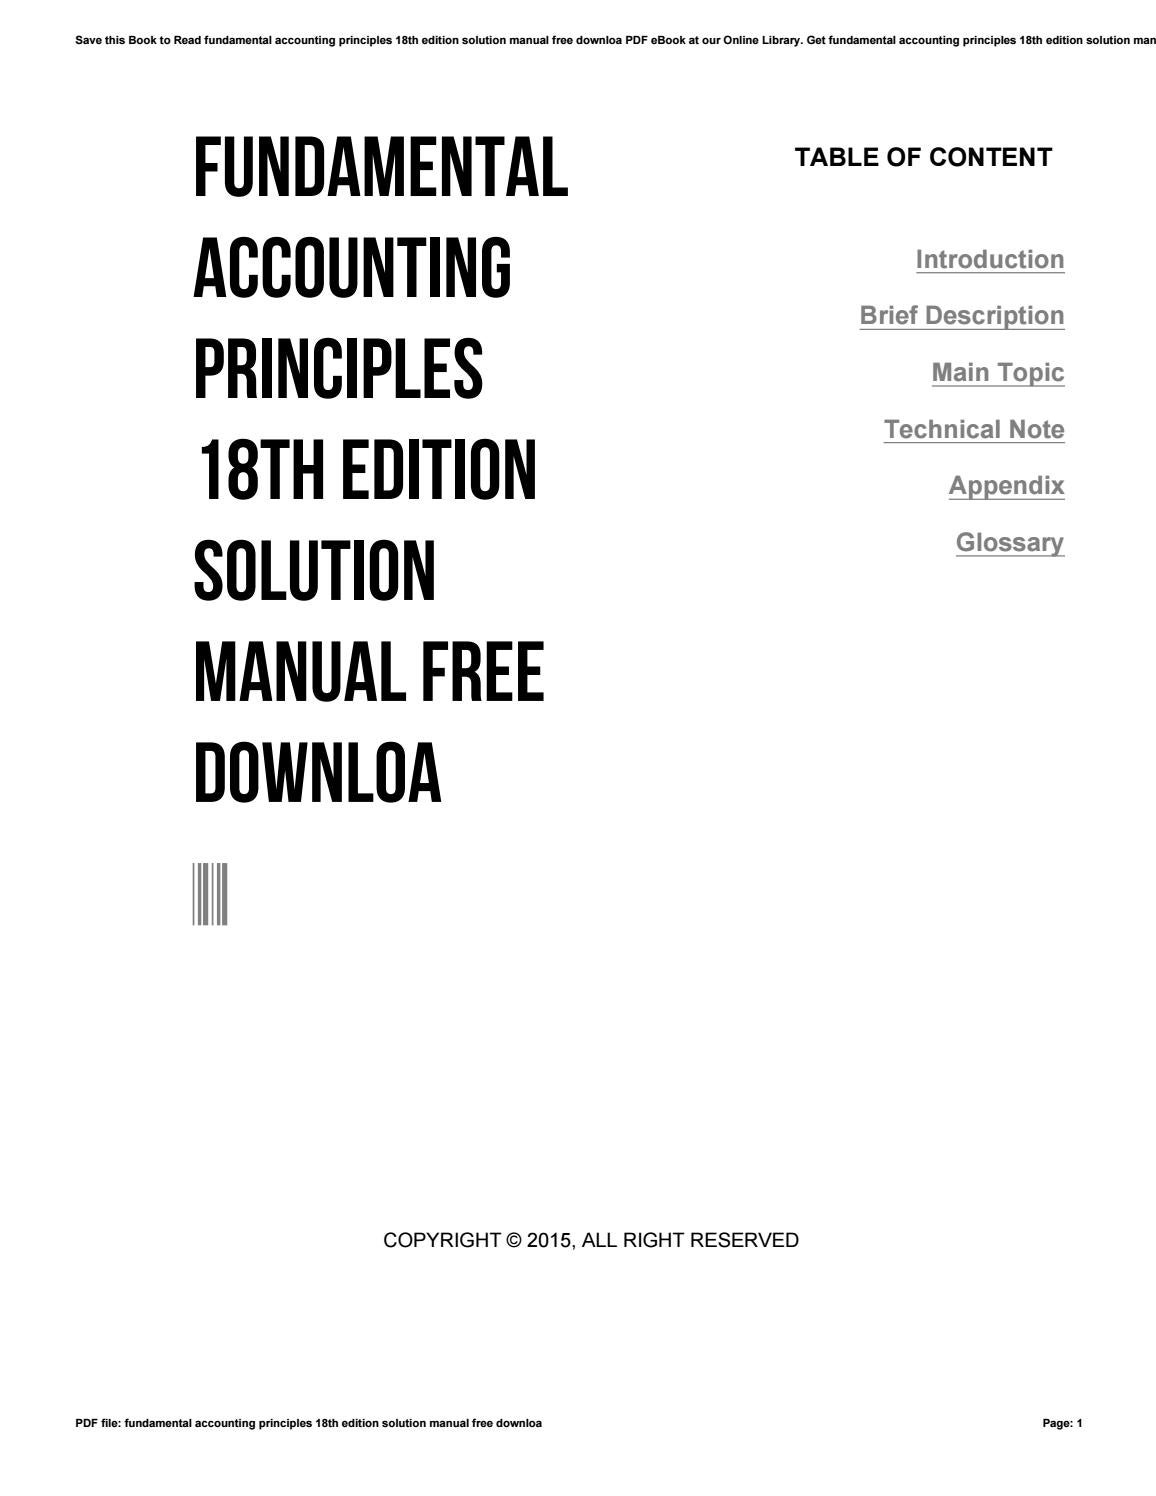 Fundamental accounting principles 18th edition solution manual free downloa  by rblx91 - issuu